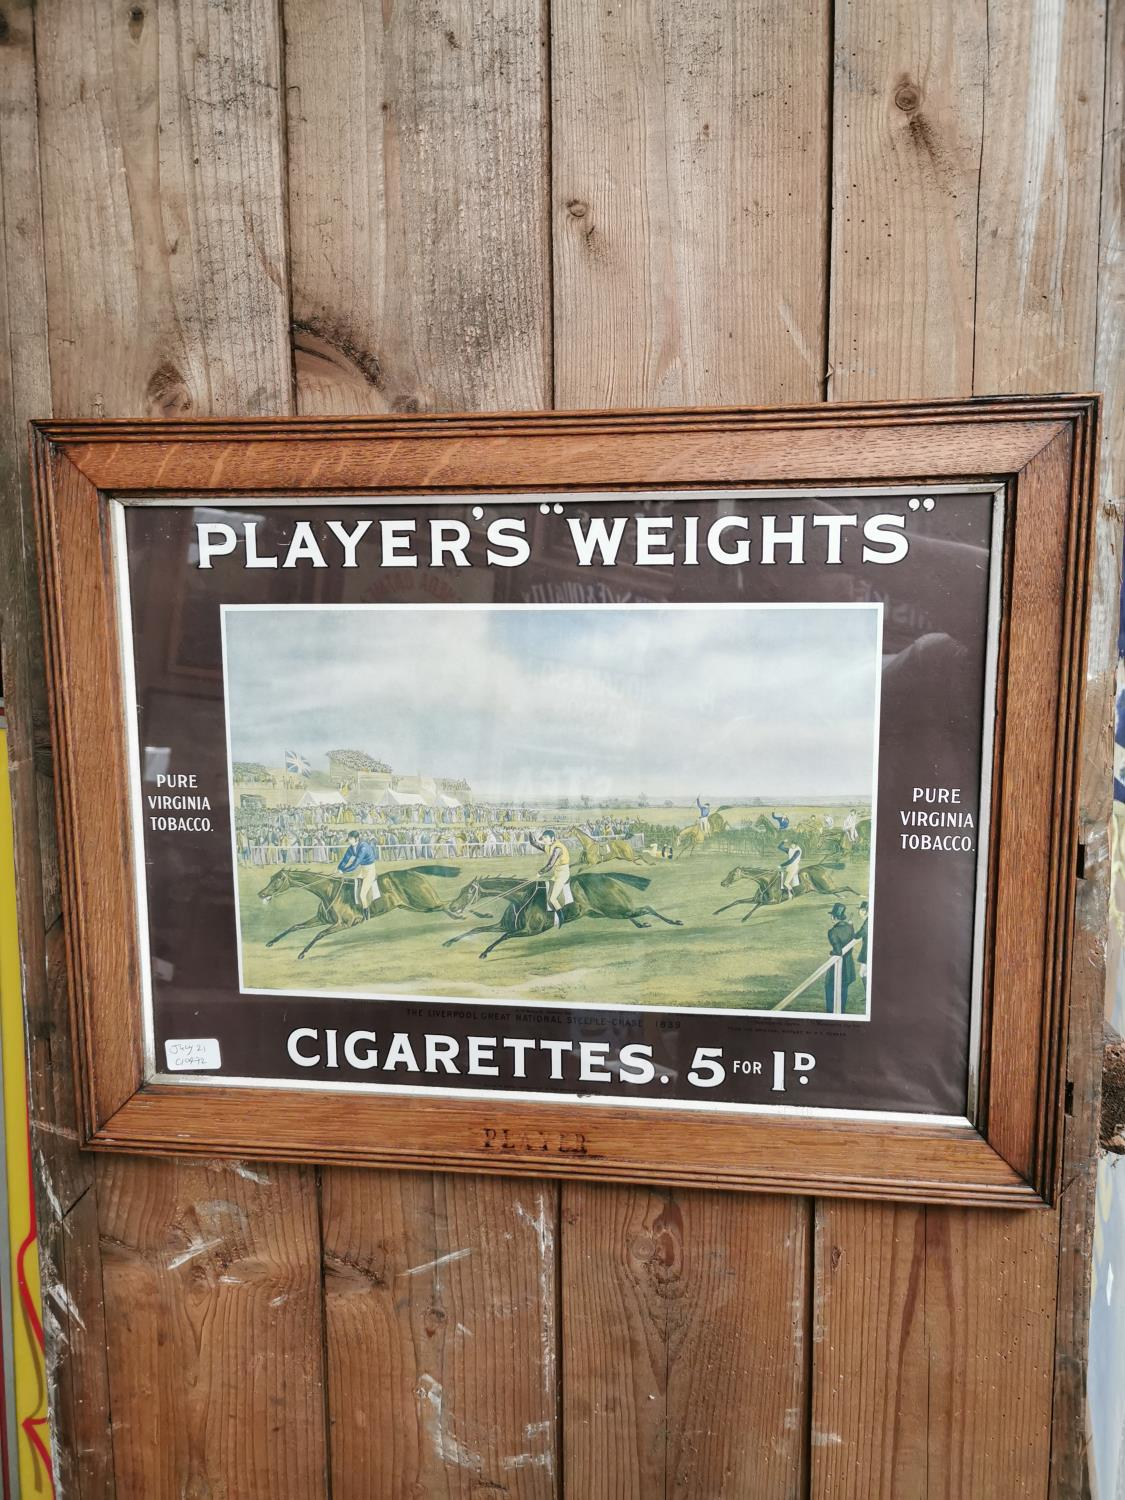 Players Weights cigarettes advertising print.